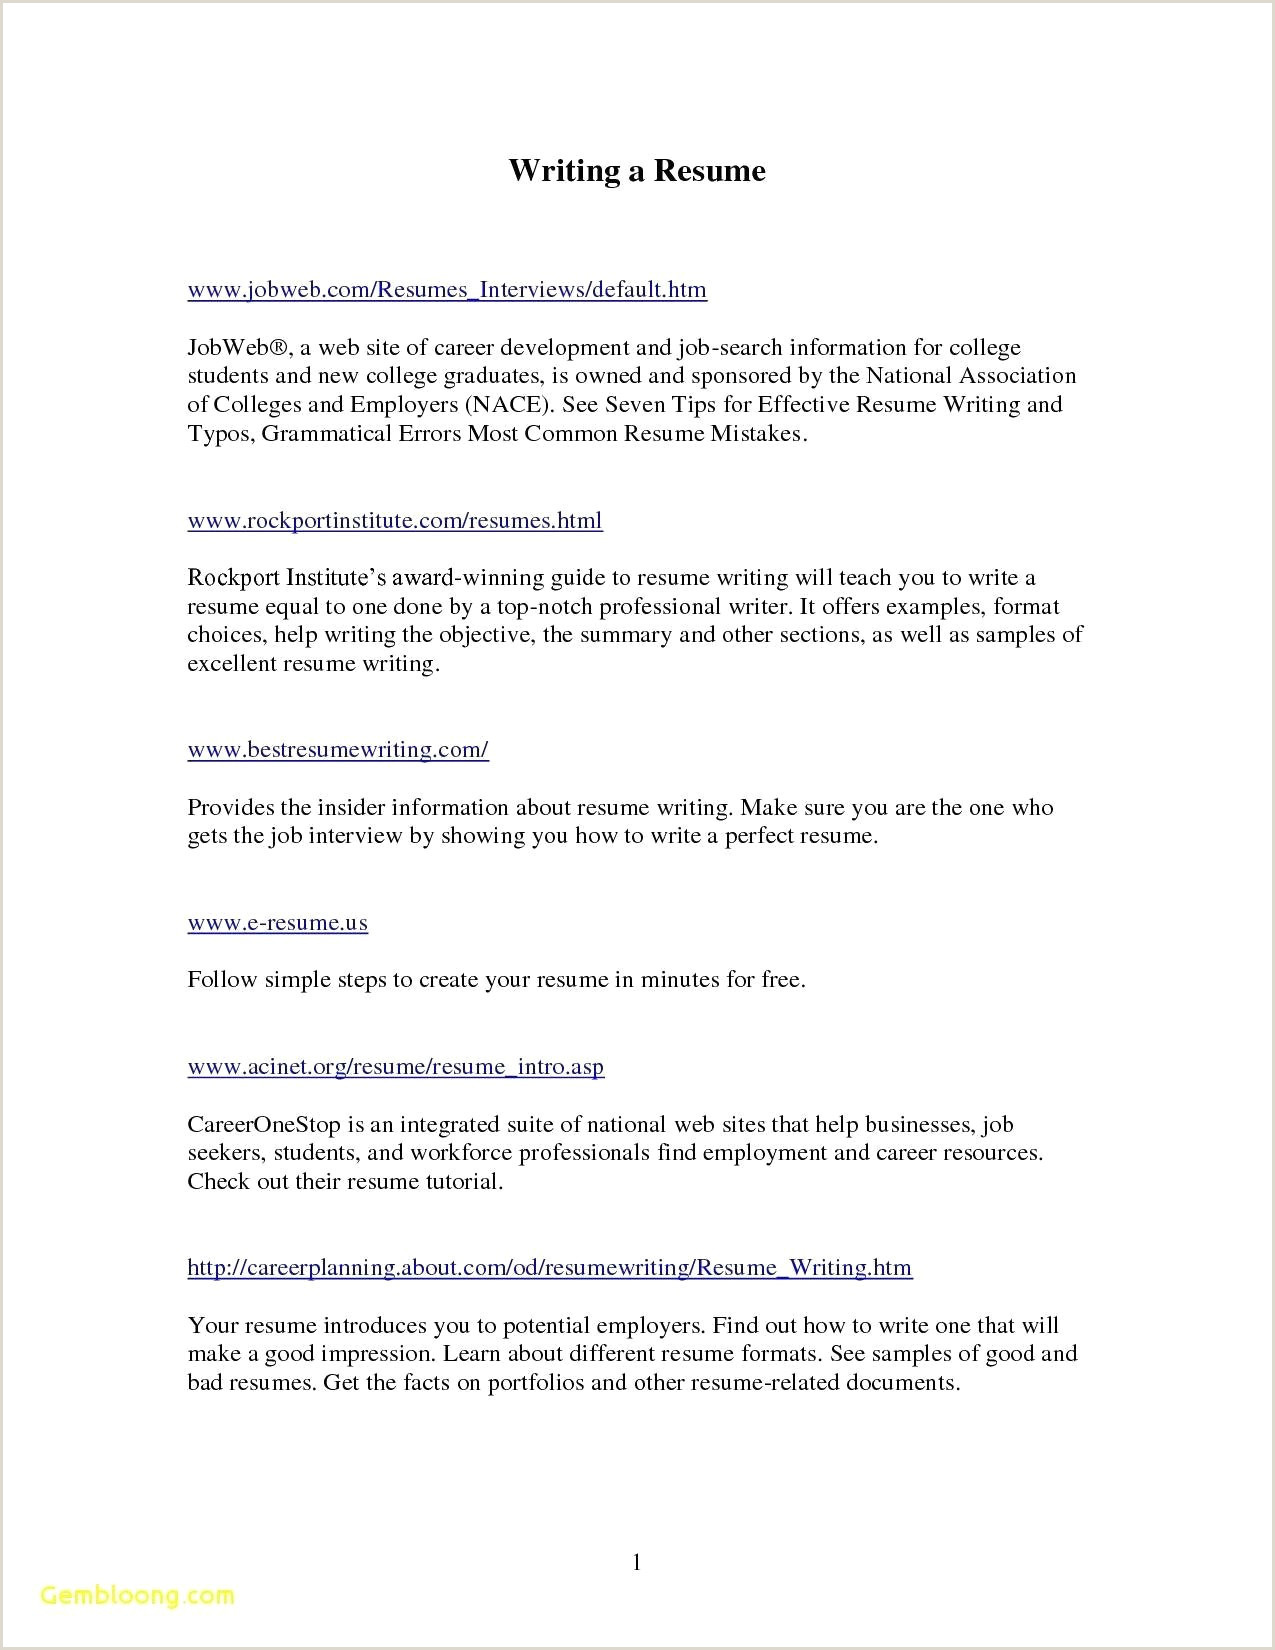 Adjunct Professor Cover Letter No Experience Resume Tips for Teaching Positions – Salumguilher